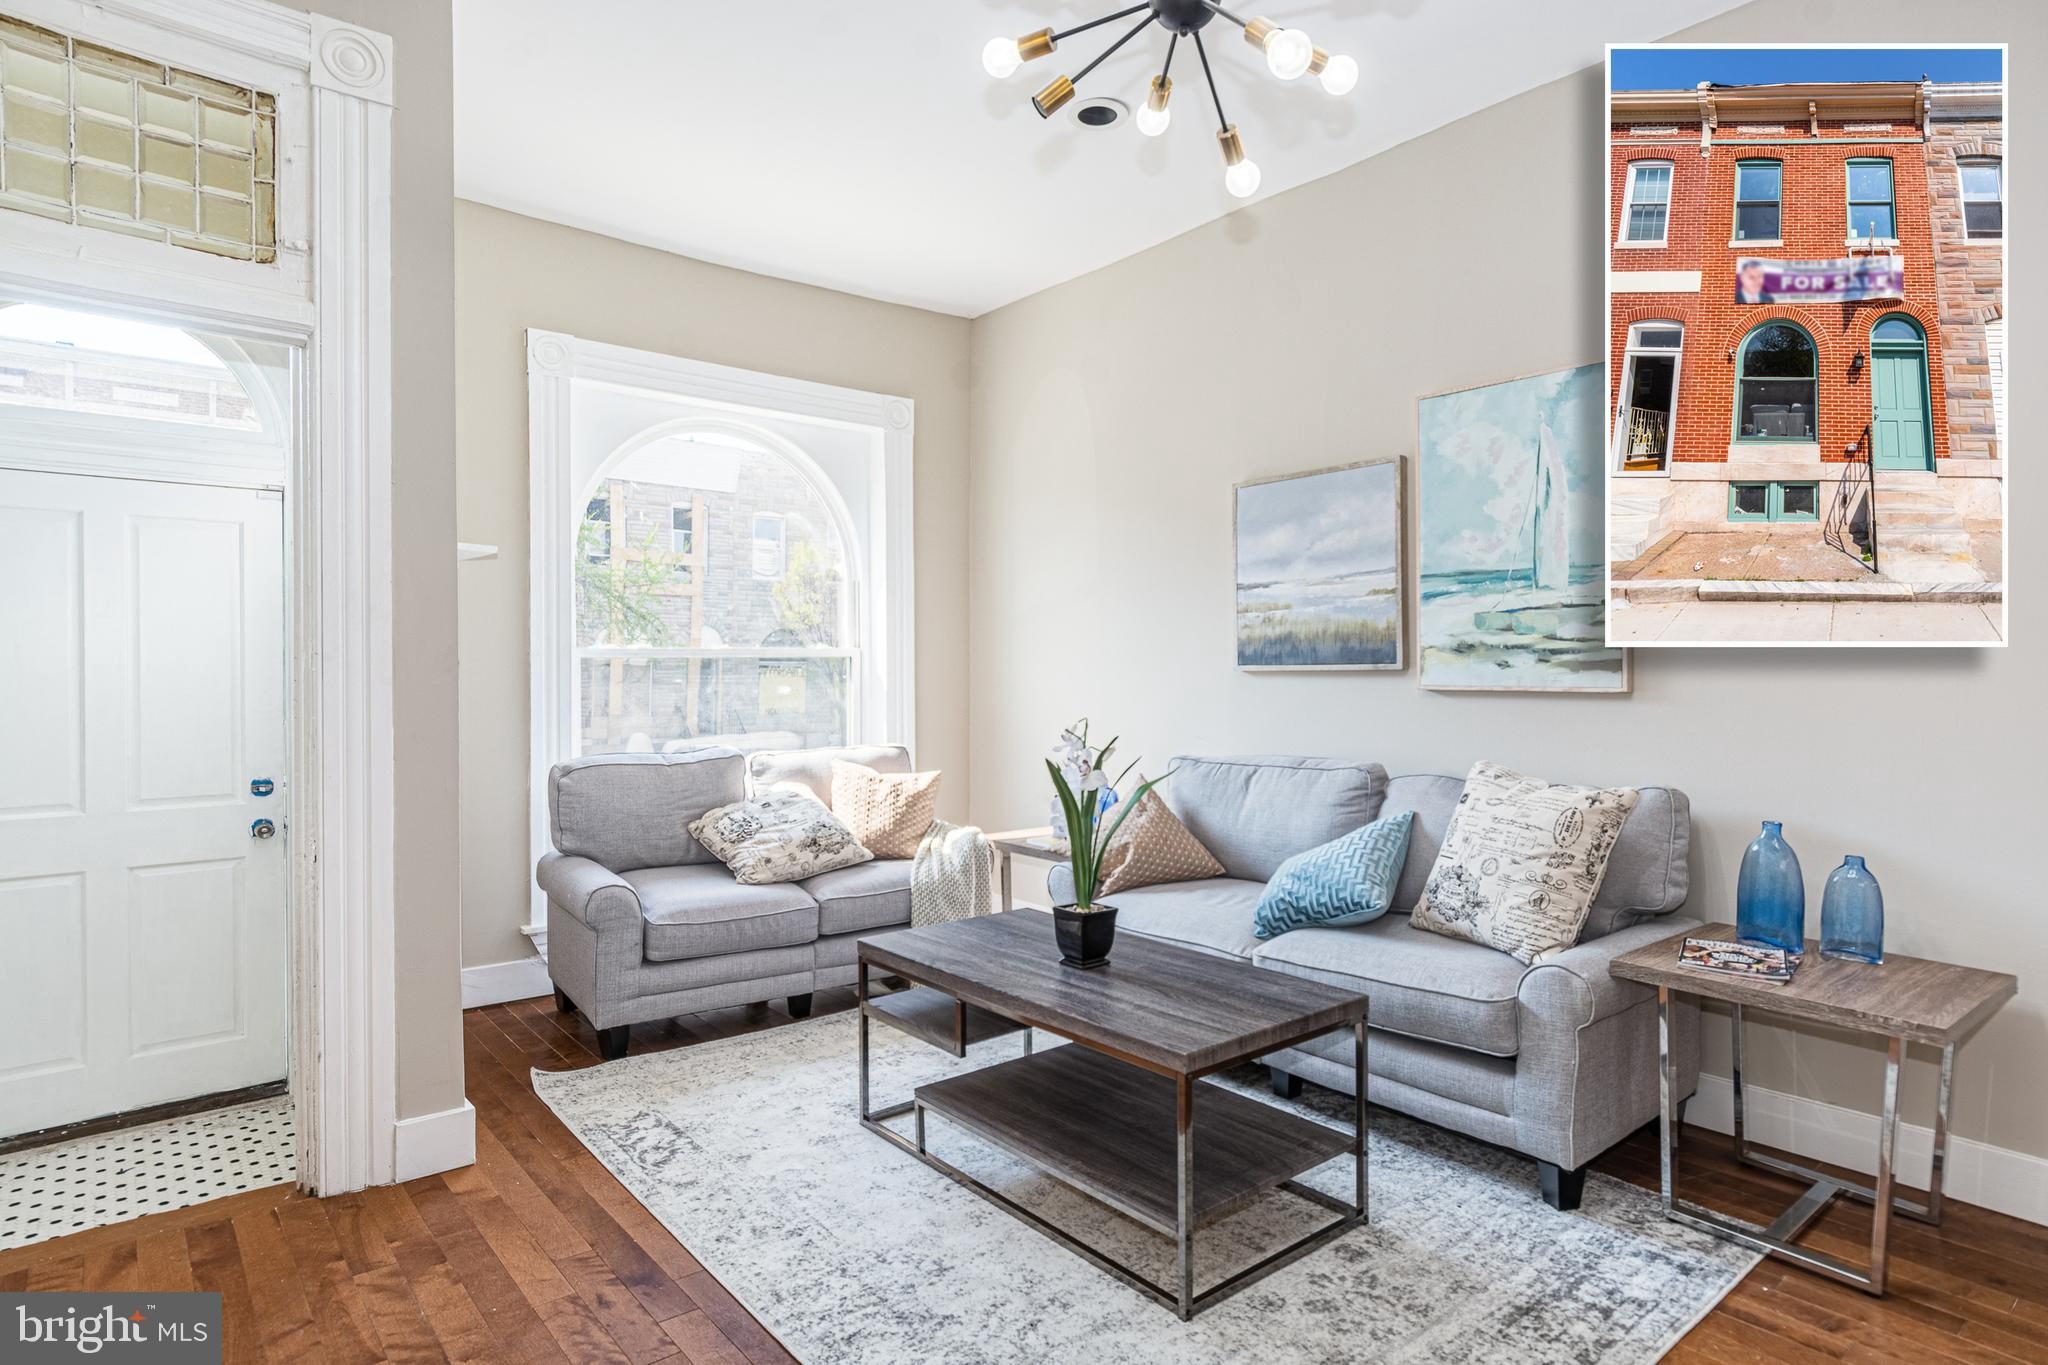 813 N PATTERSON PARK AVENUE, BALTIMORE, Maryland 21205, 3 Bedrooms Bedrooms, ,3 BathroomsBathrooms,Townhouse,For Sale,813 N PATTERSON PARK AVENUE,MDBA546548